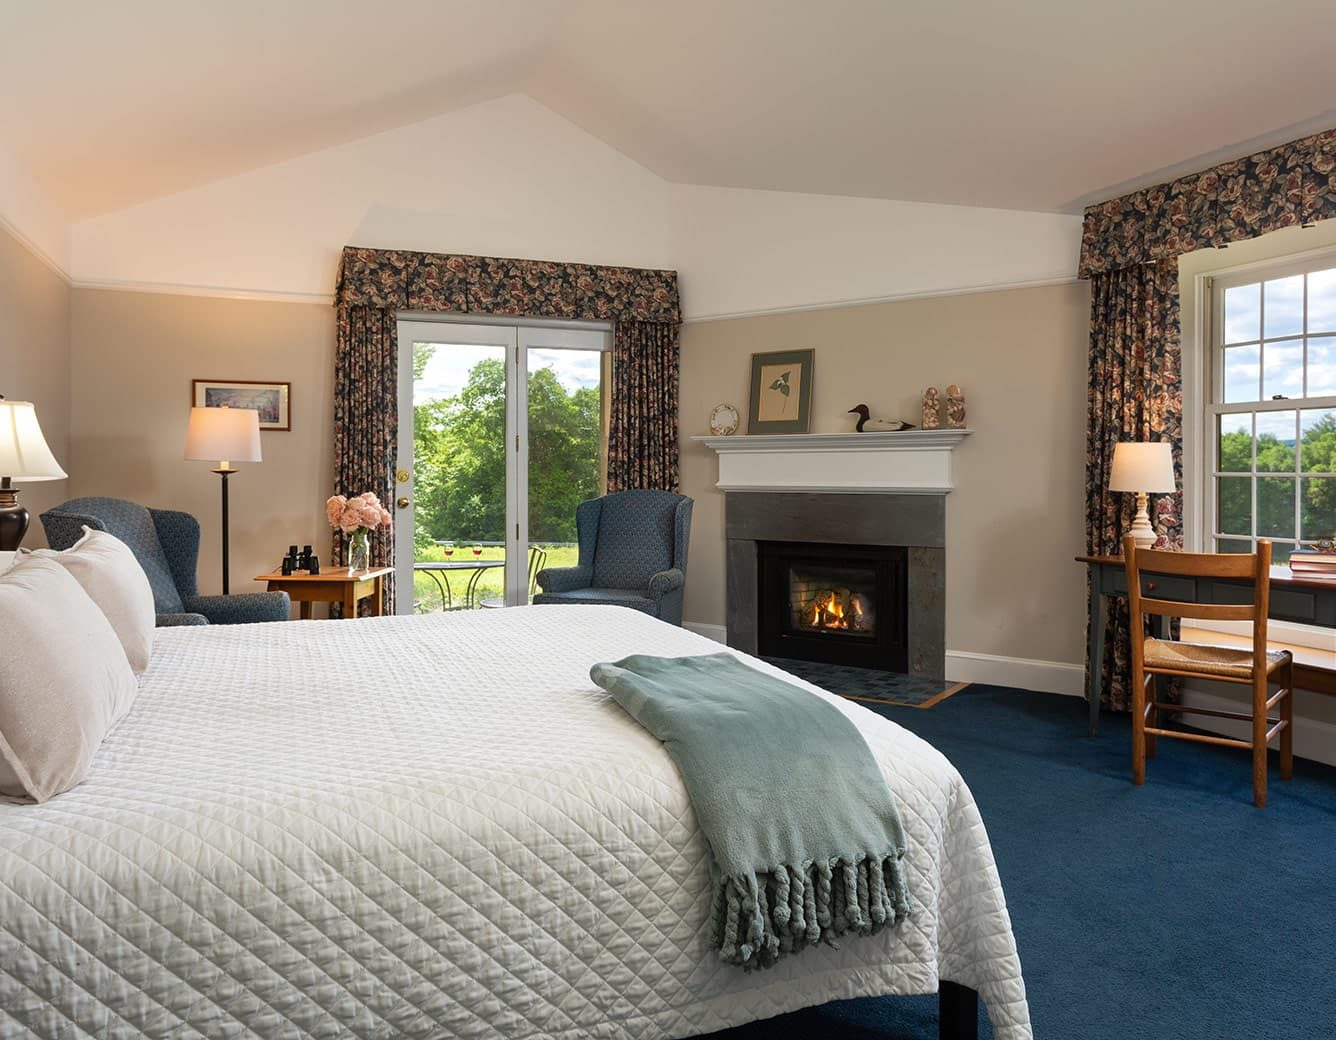 Bed, fireplace, desk and chairs in Room 22